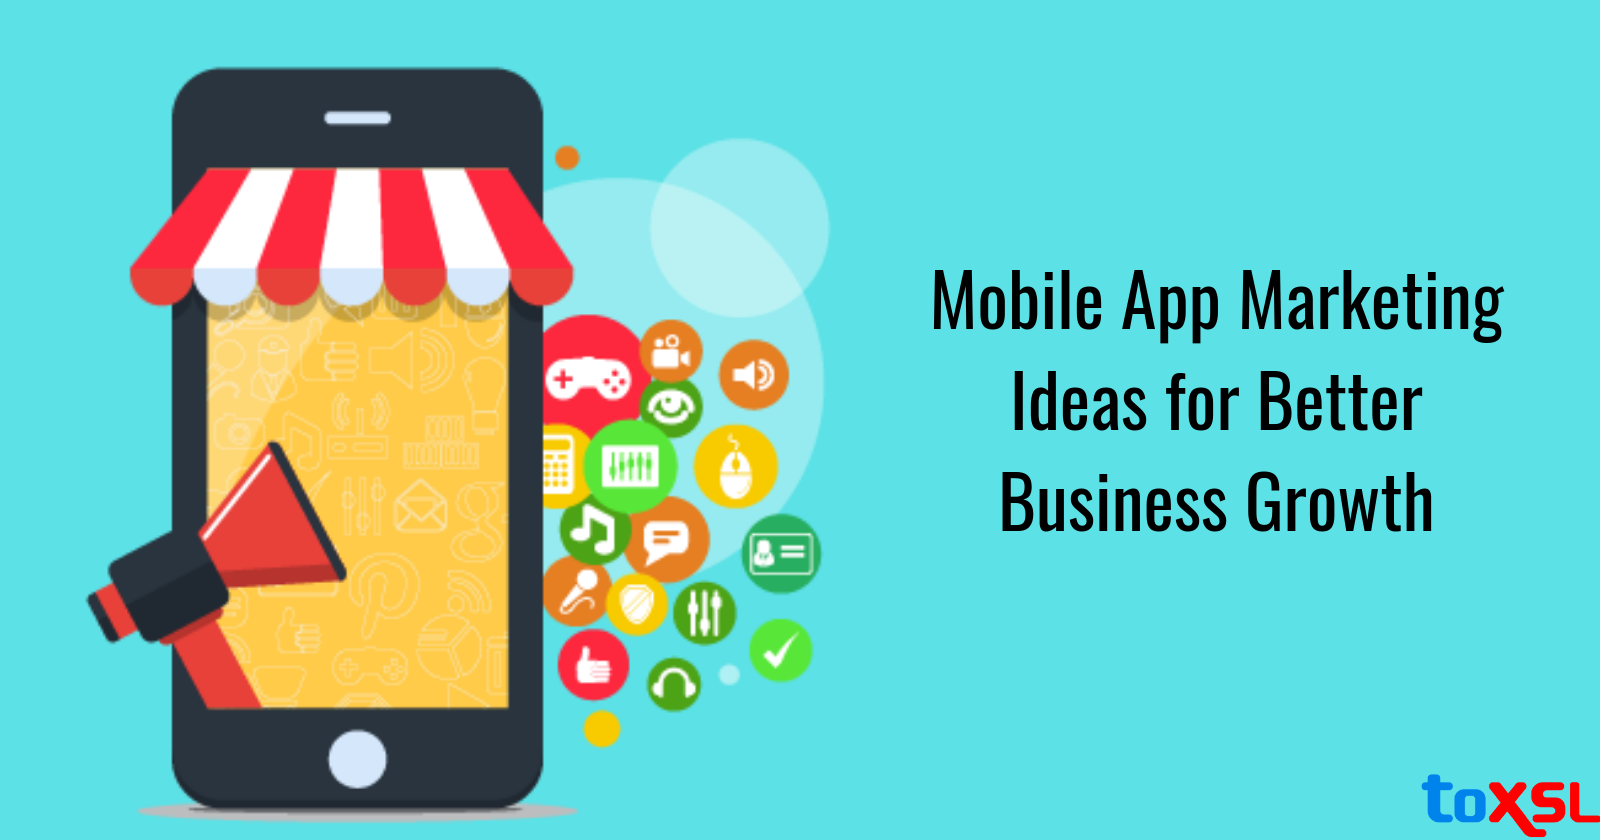 Top Mobile App Marketing Strategies to Try in 2019